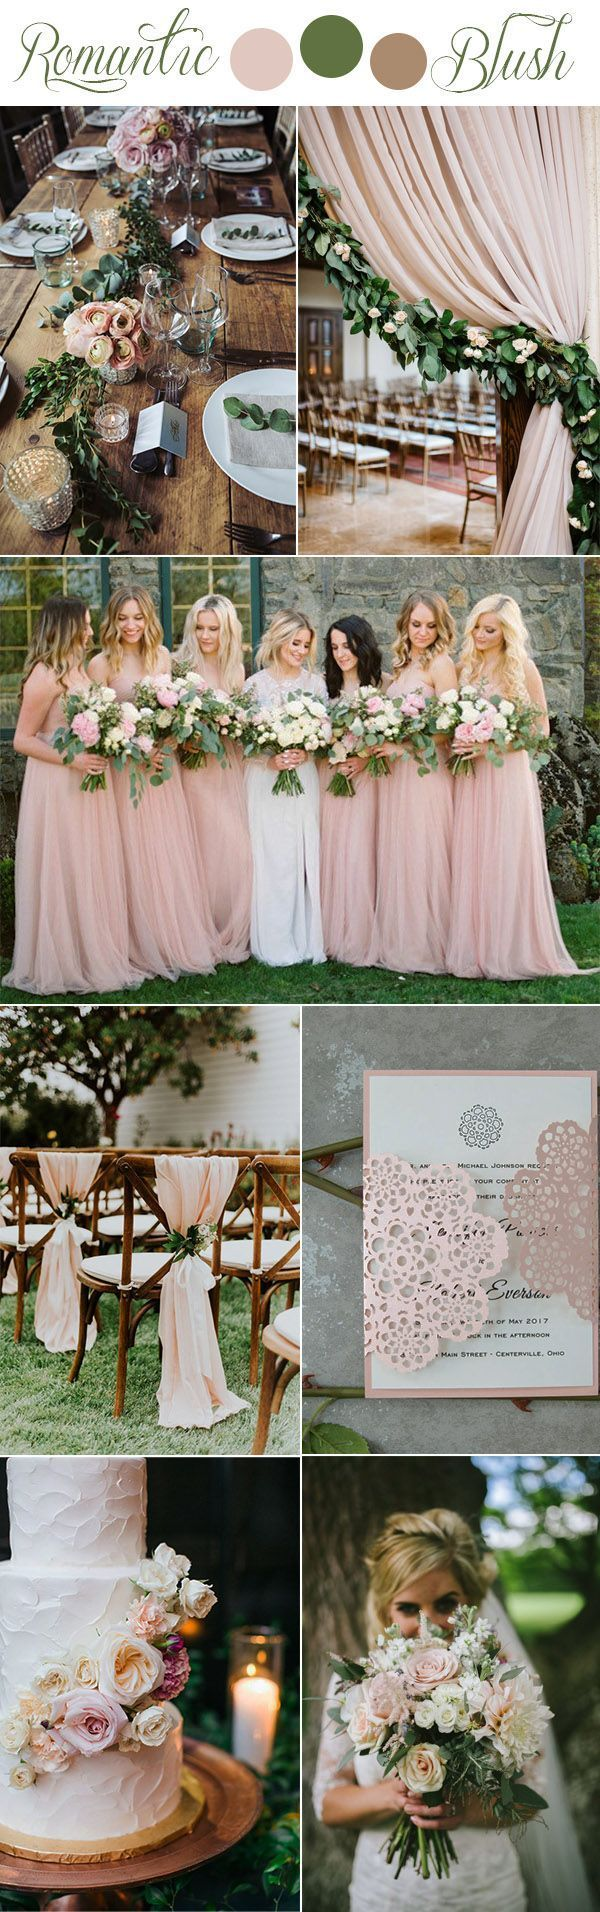 Brilliant 25 Popular Wedding Color Trends For 2017 https://fashiotopia.com/2017/09/20/25-popular-wedding-color-trends-2017/ You can locate a superior number of dresses there. Sometimes you may be surprised to find that lots of large department stores may also sell wedding dresses